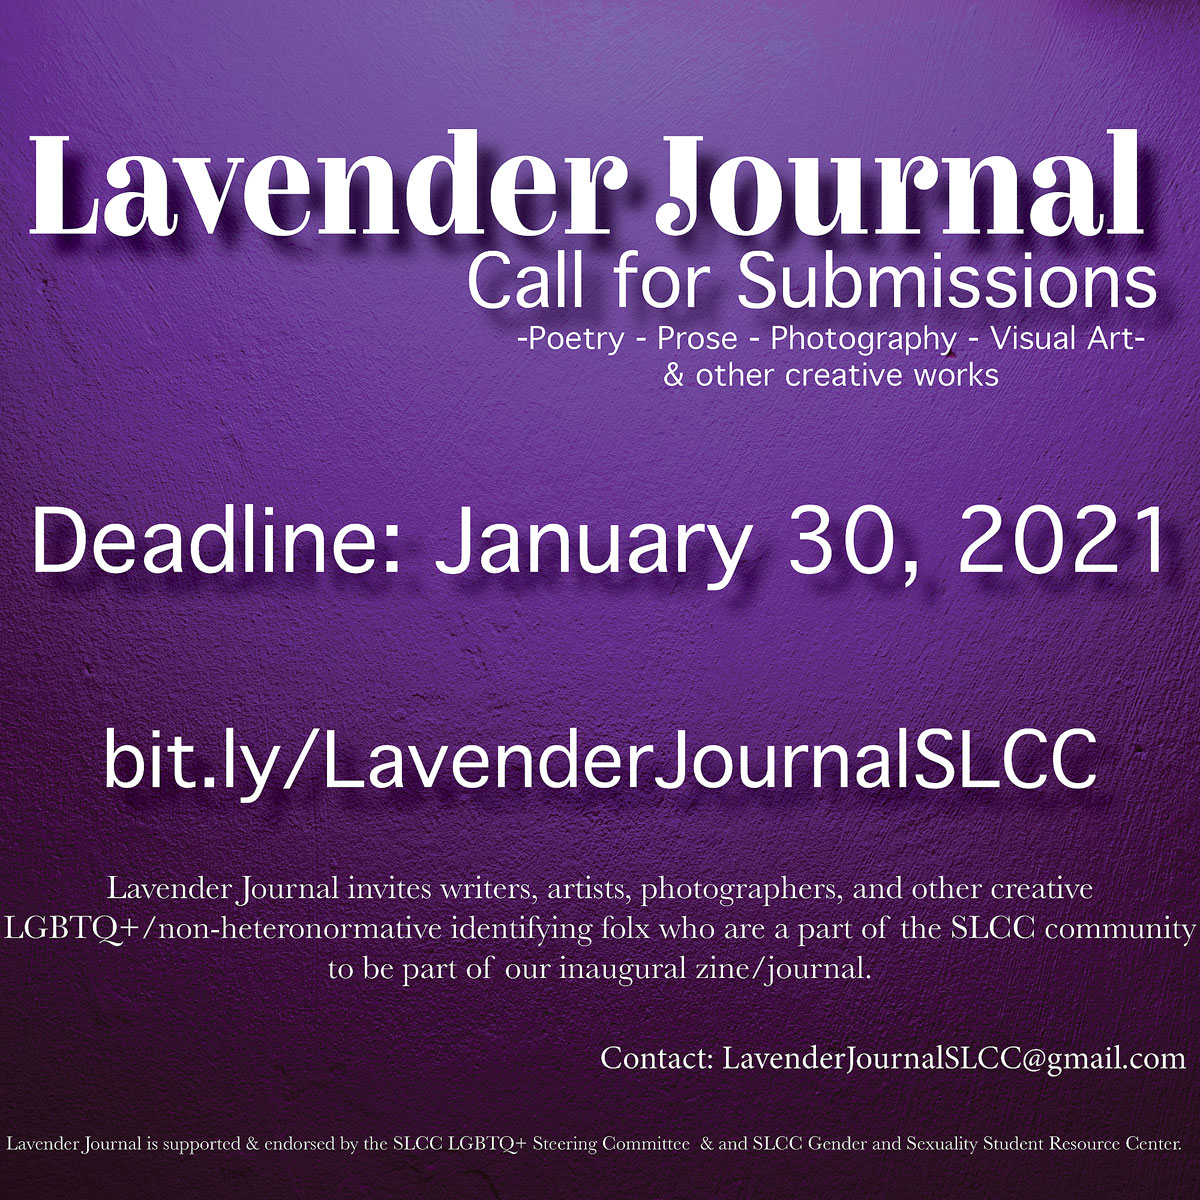 Lavender Journal call for submissions, deadline: January 30, 2021